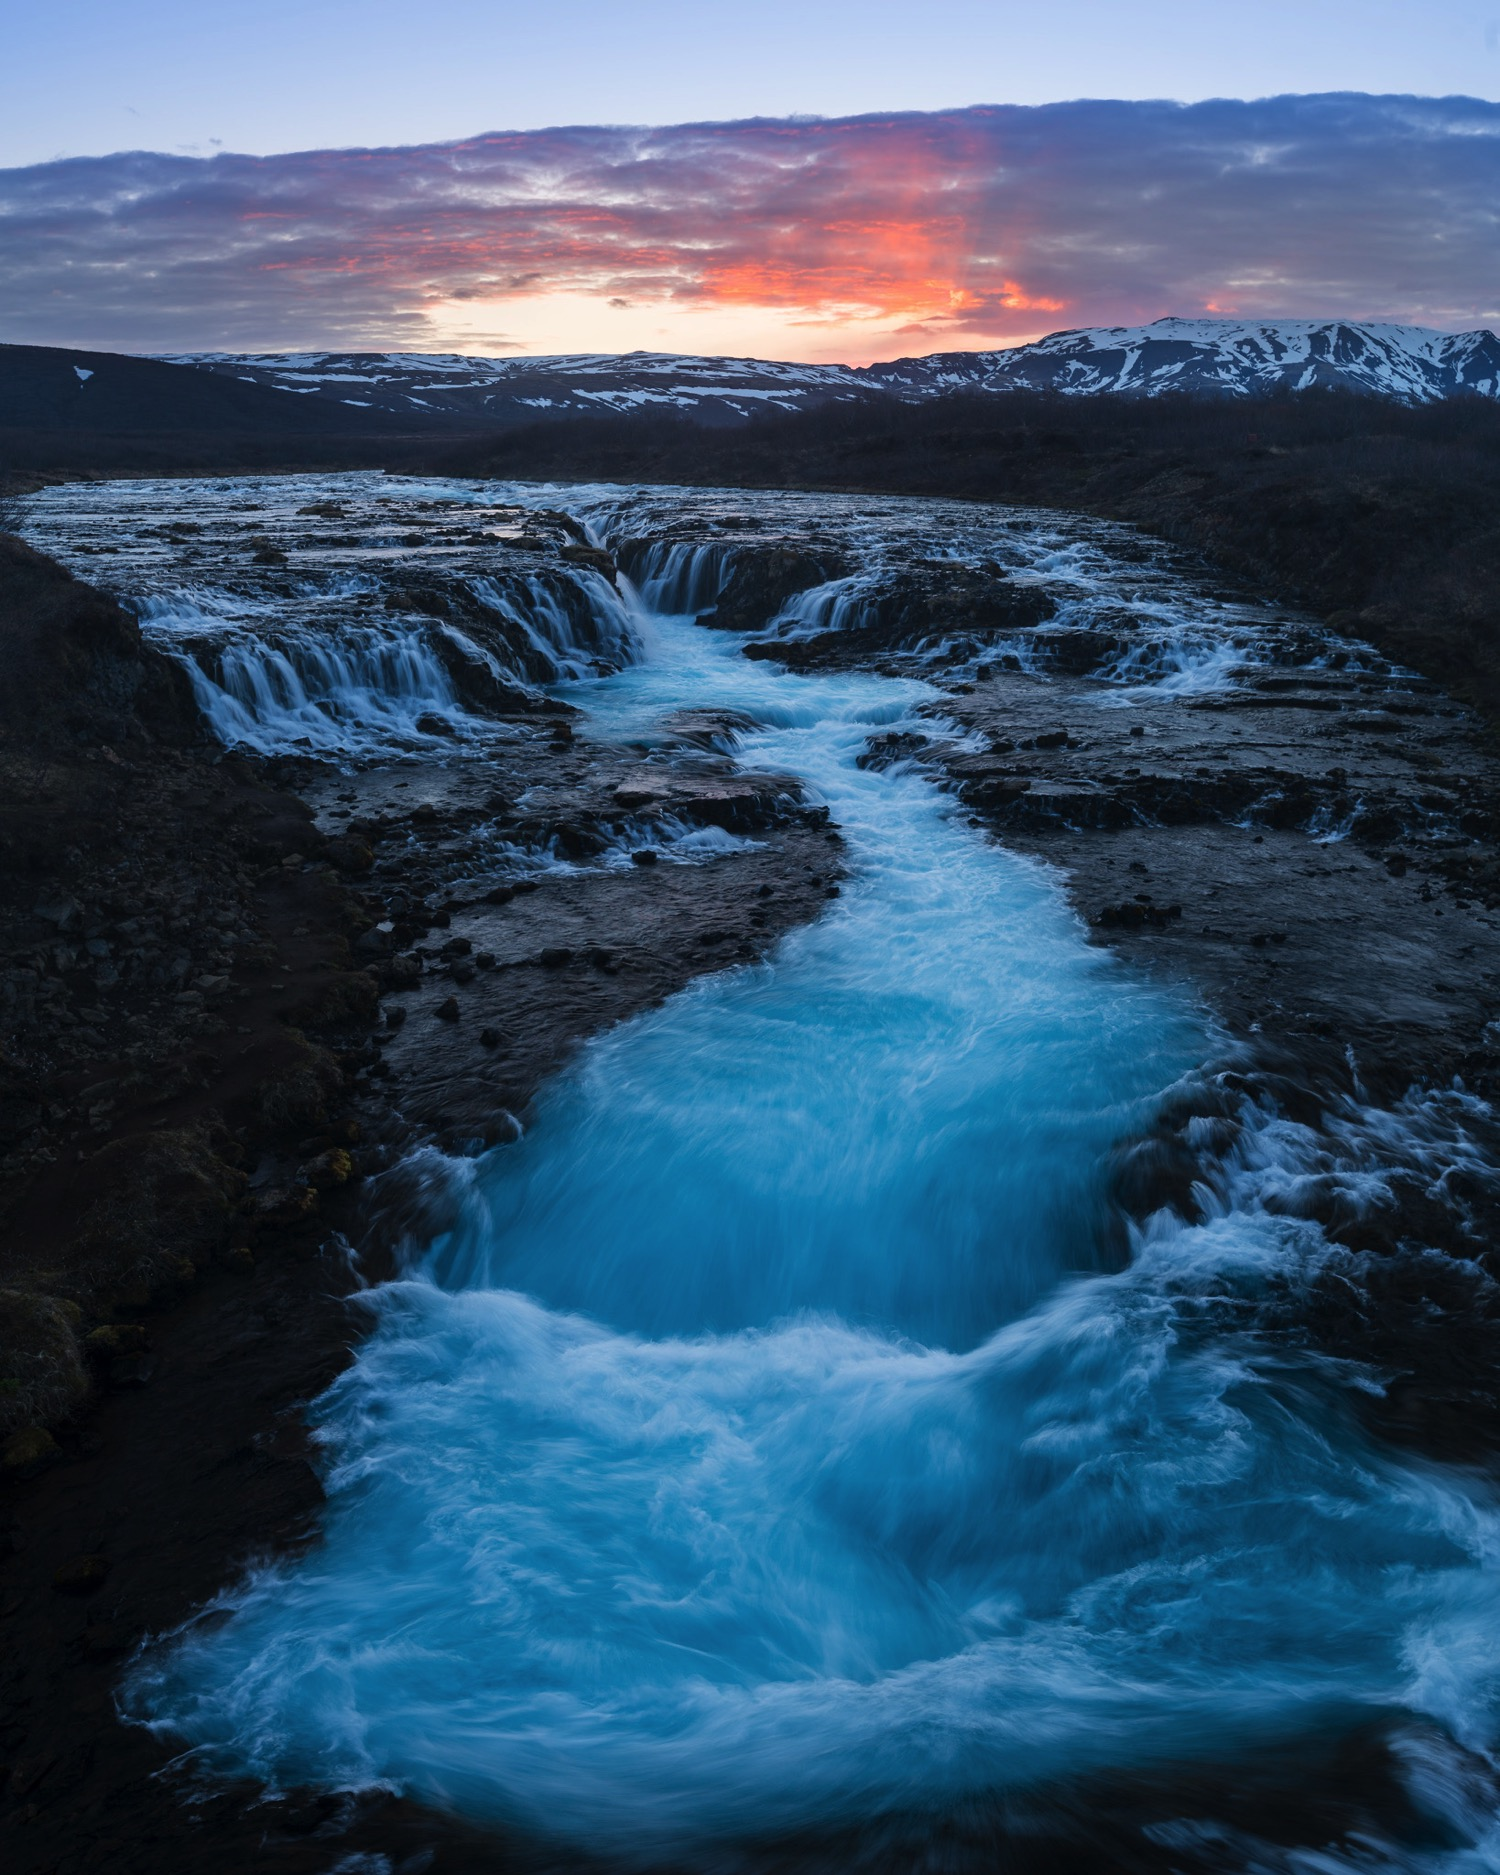 Sunset at Bruarfoss - Iceland Blog Part IIPhoto by Trung Hoang Photography |www.trunghoangphotography.com | San Francisco Bay Area Wedding Photographer